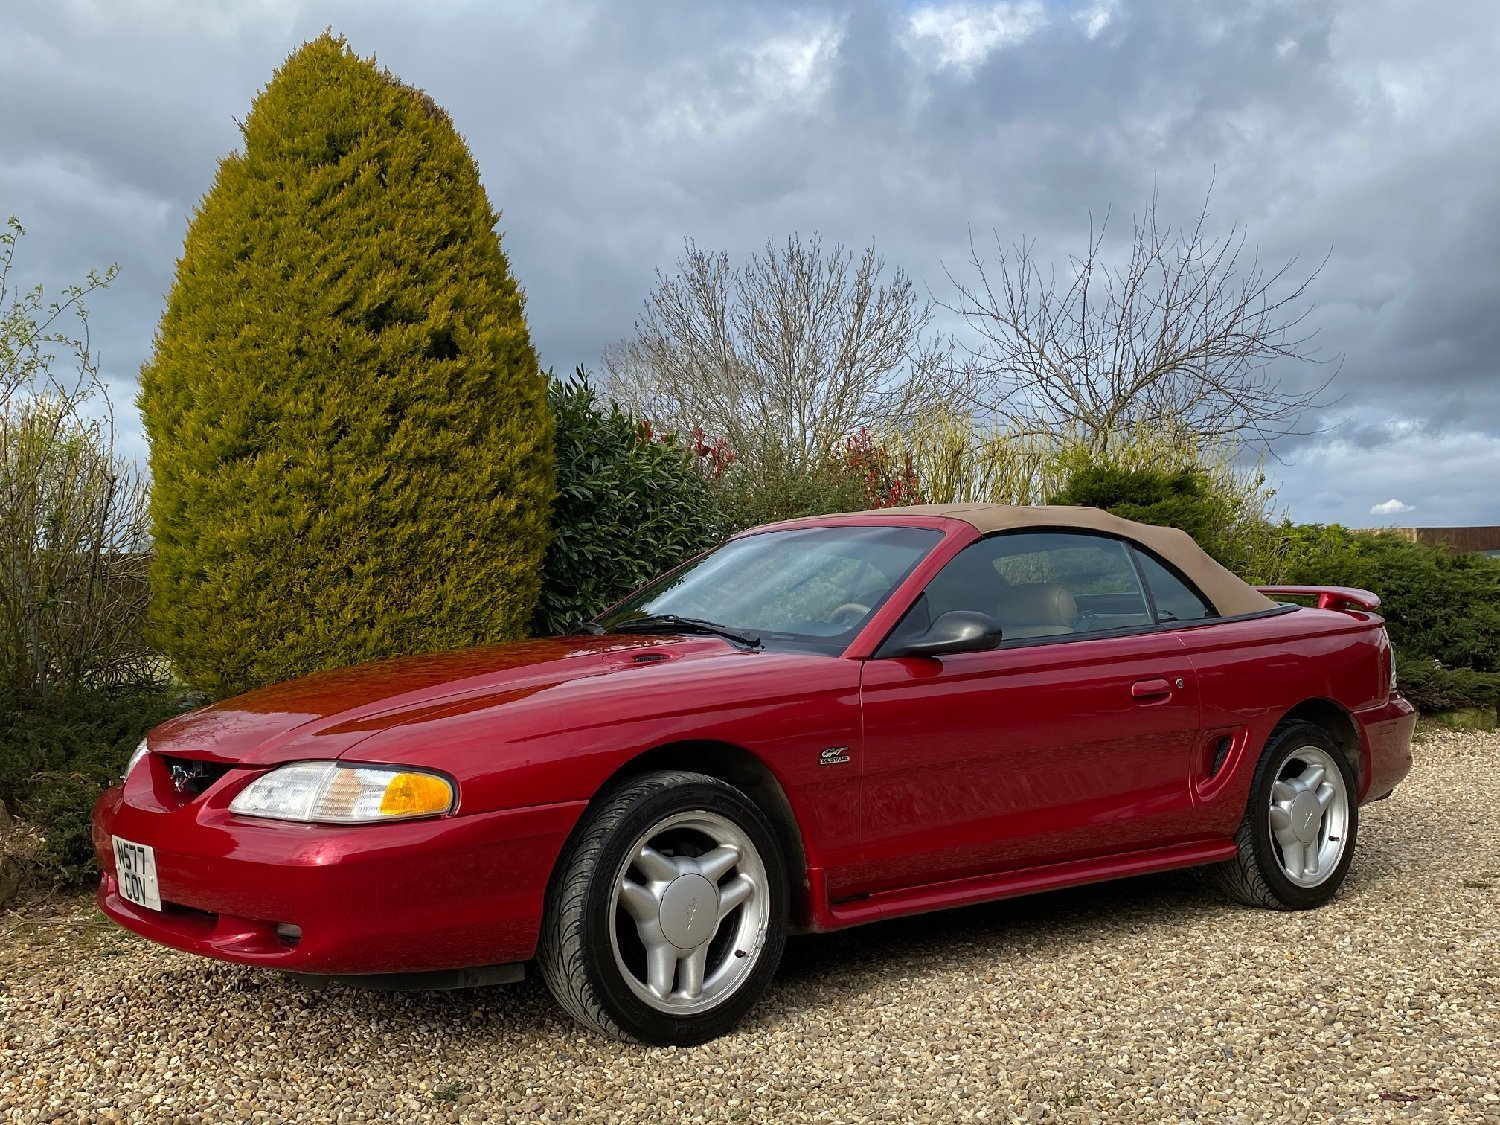 1995 Ford Mustang GT 5 Litre convertible  For Sale (picture 1 of 6)